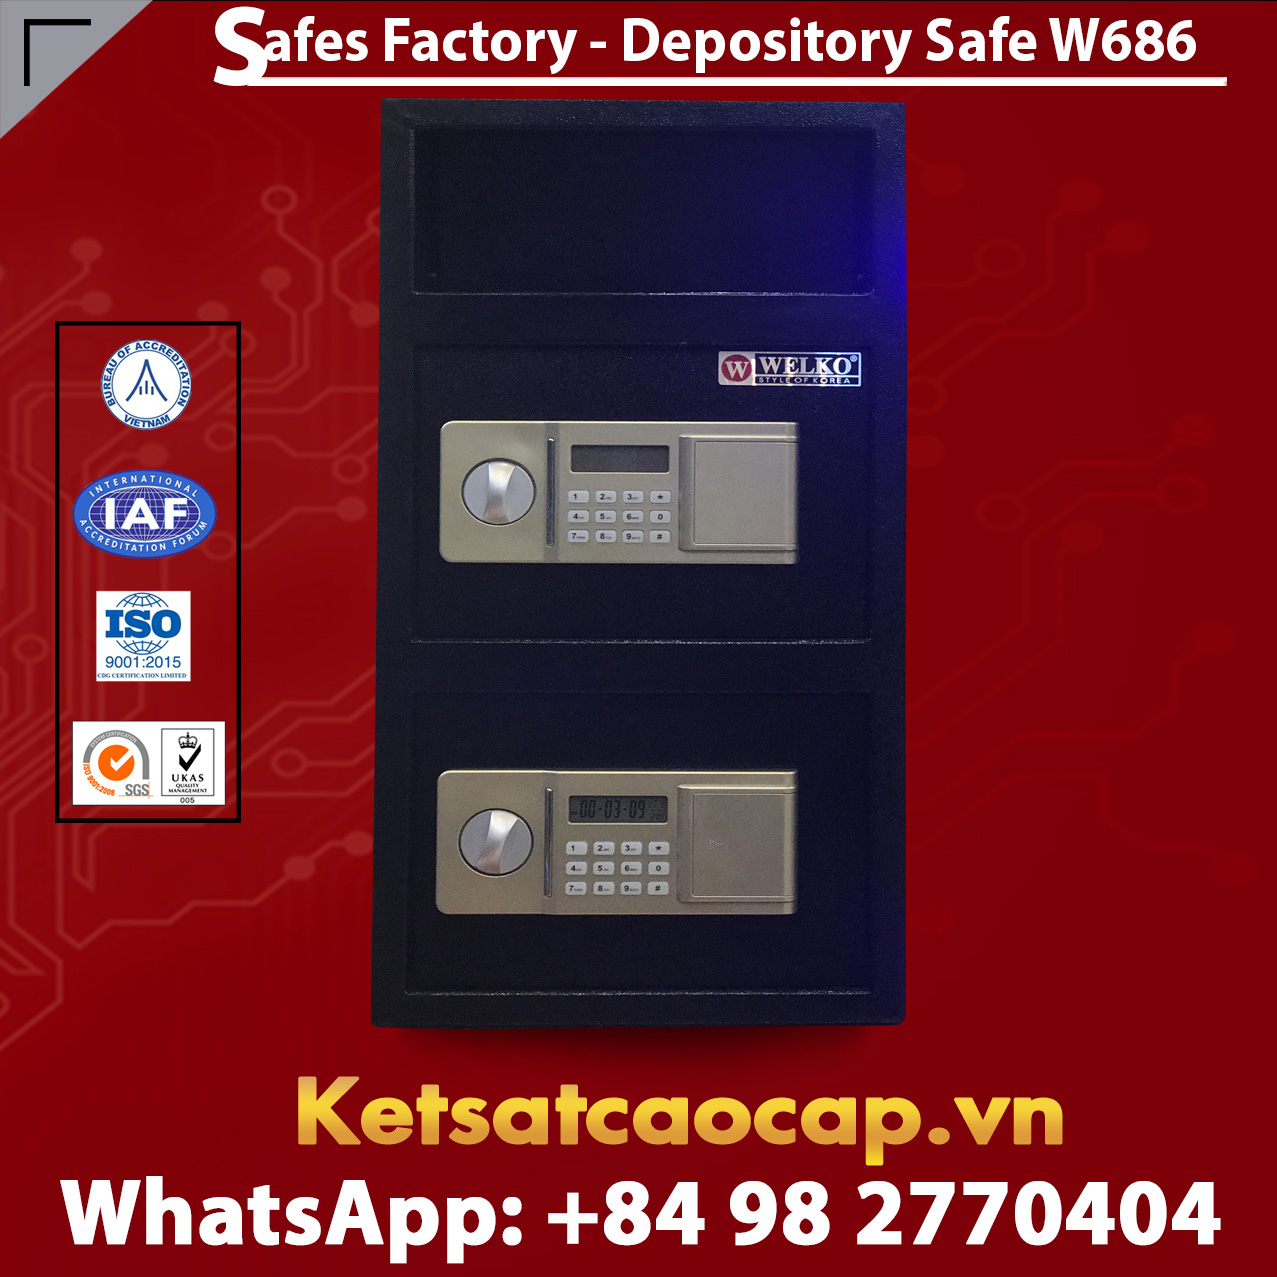 High quality Depository Safes W686